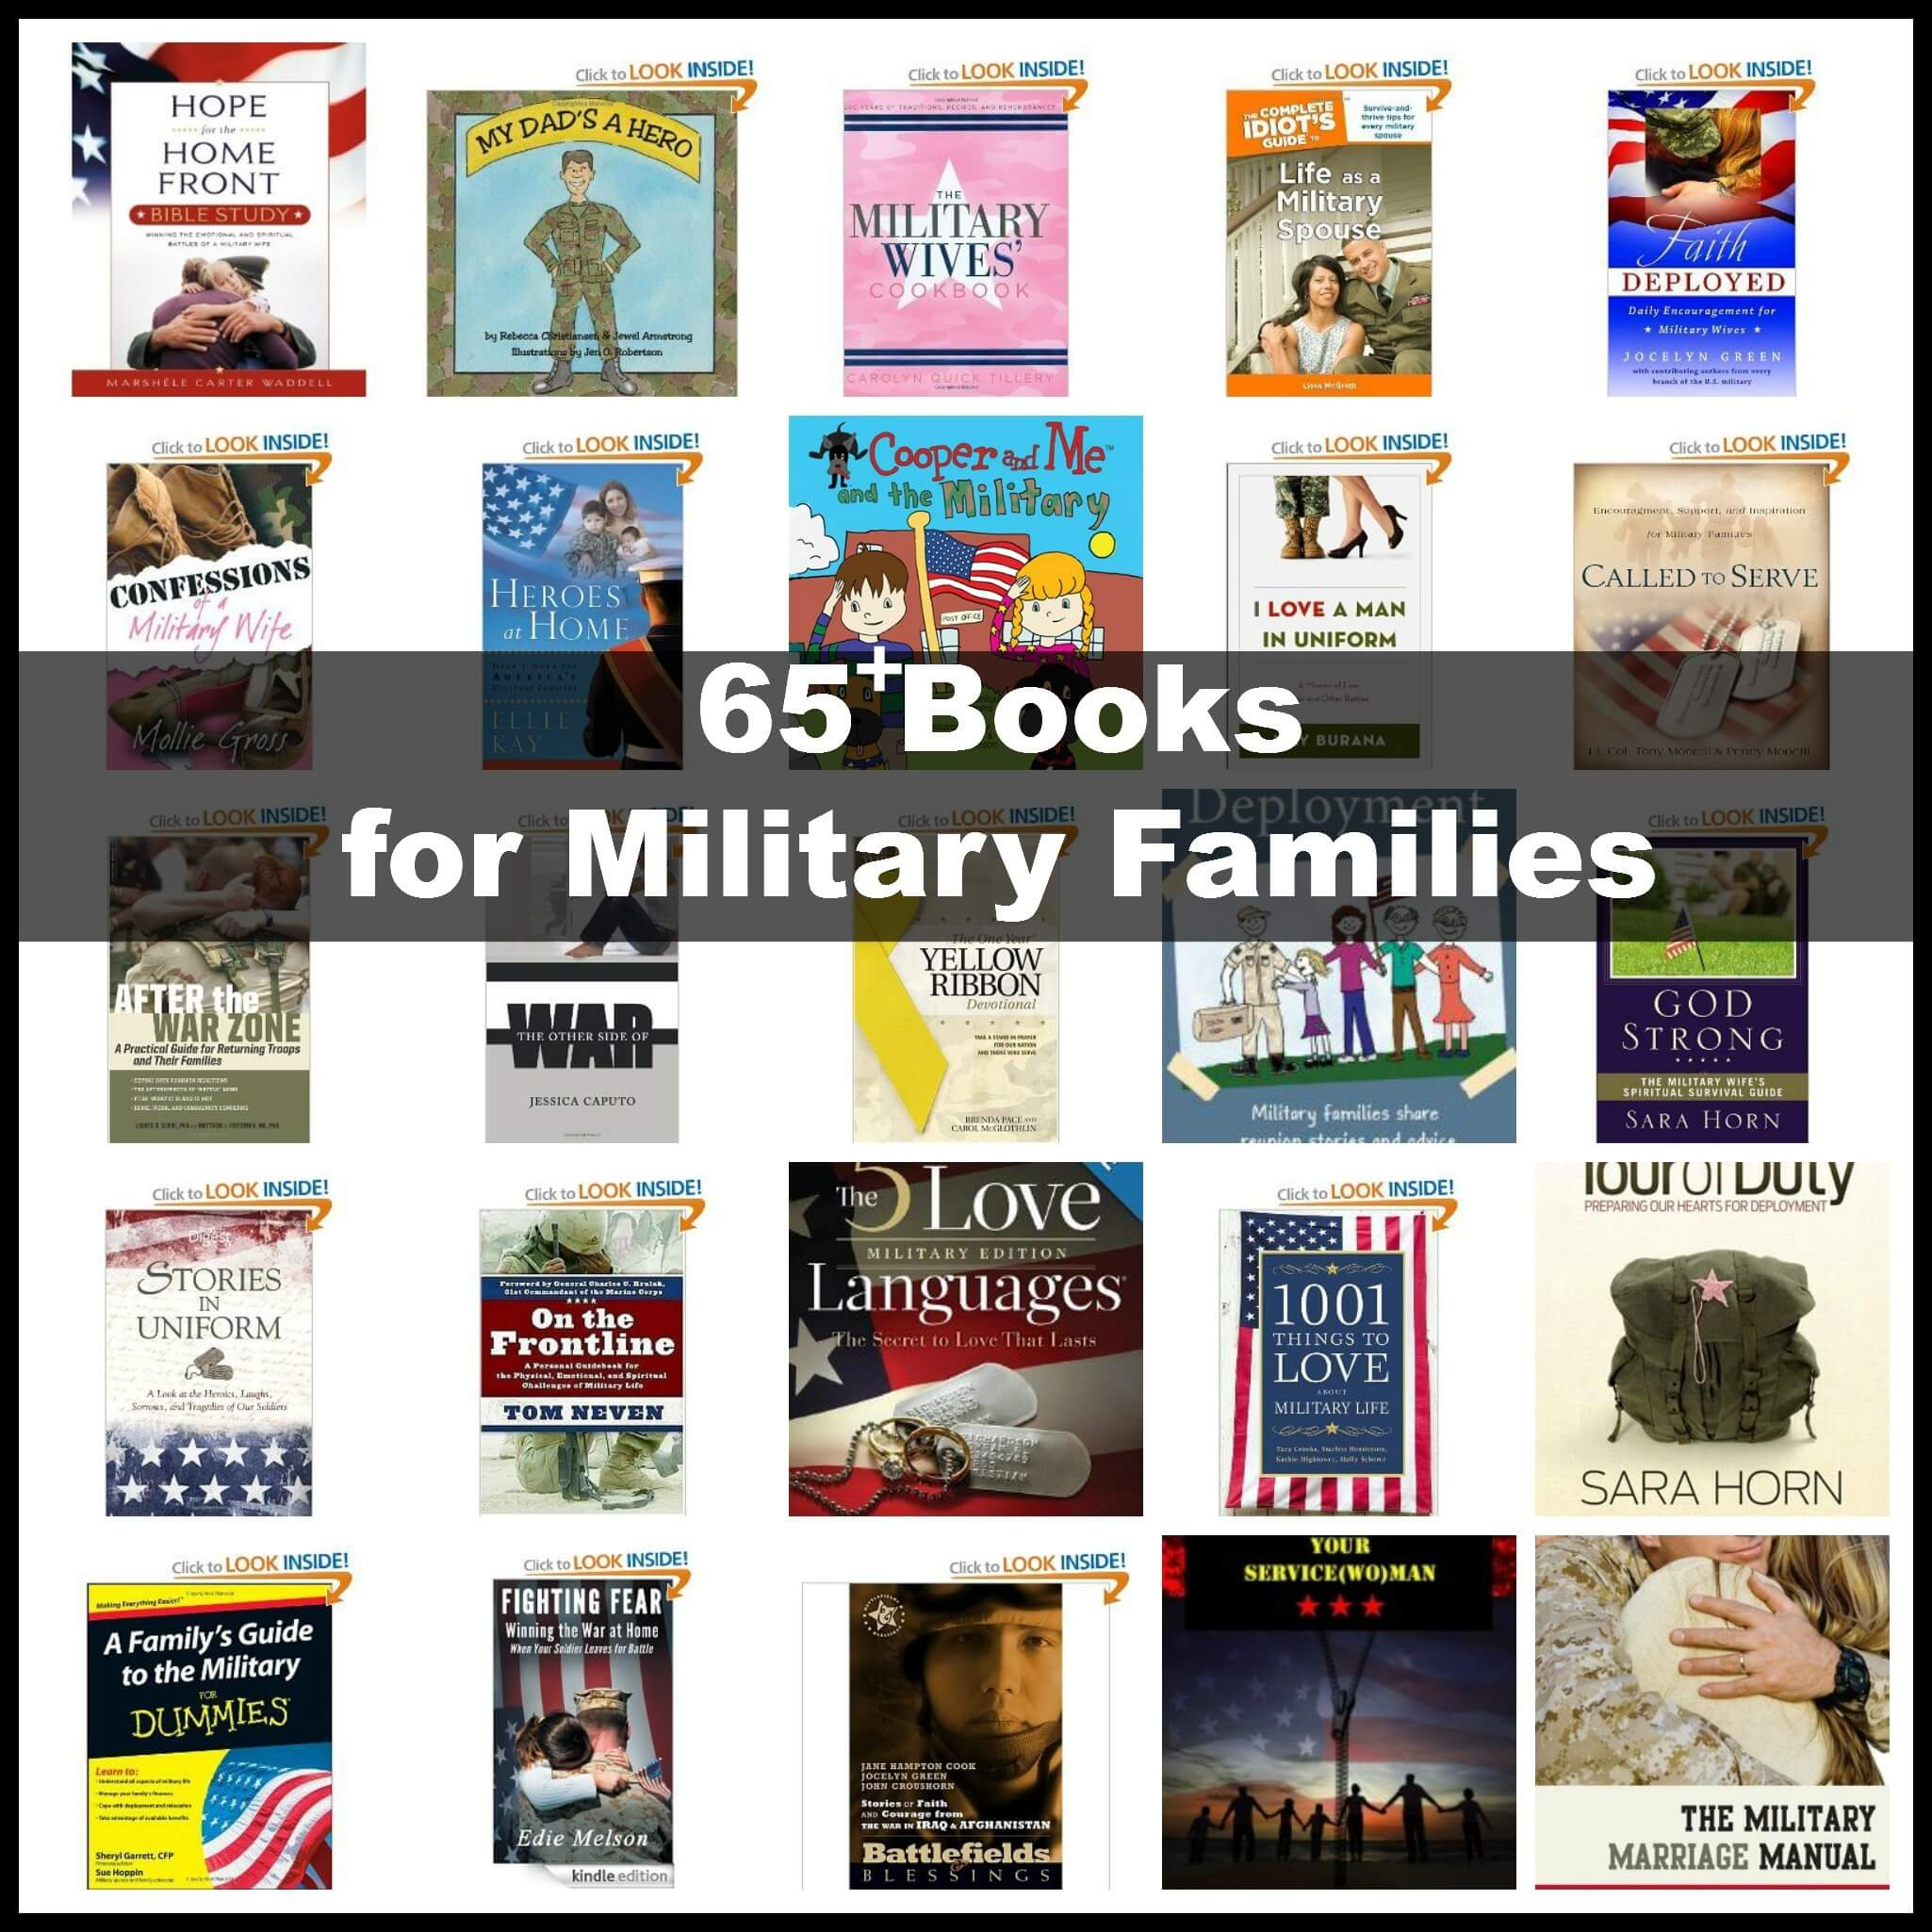 Books for military families. Military Life: